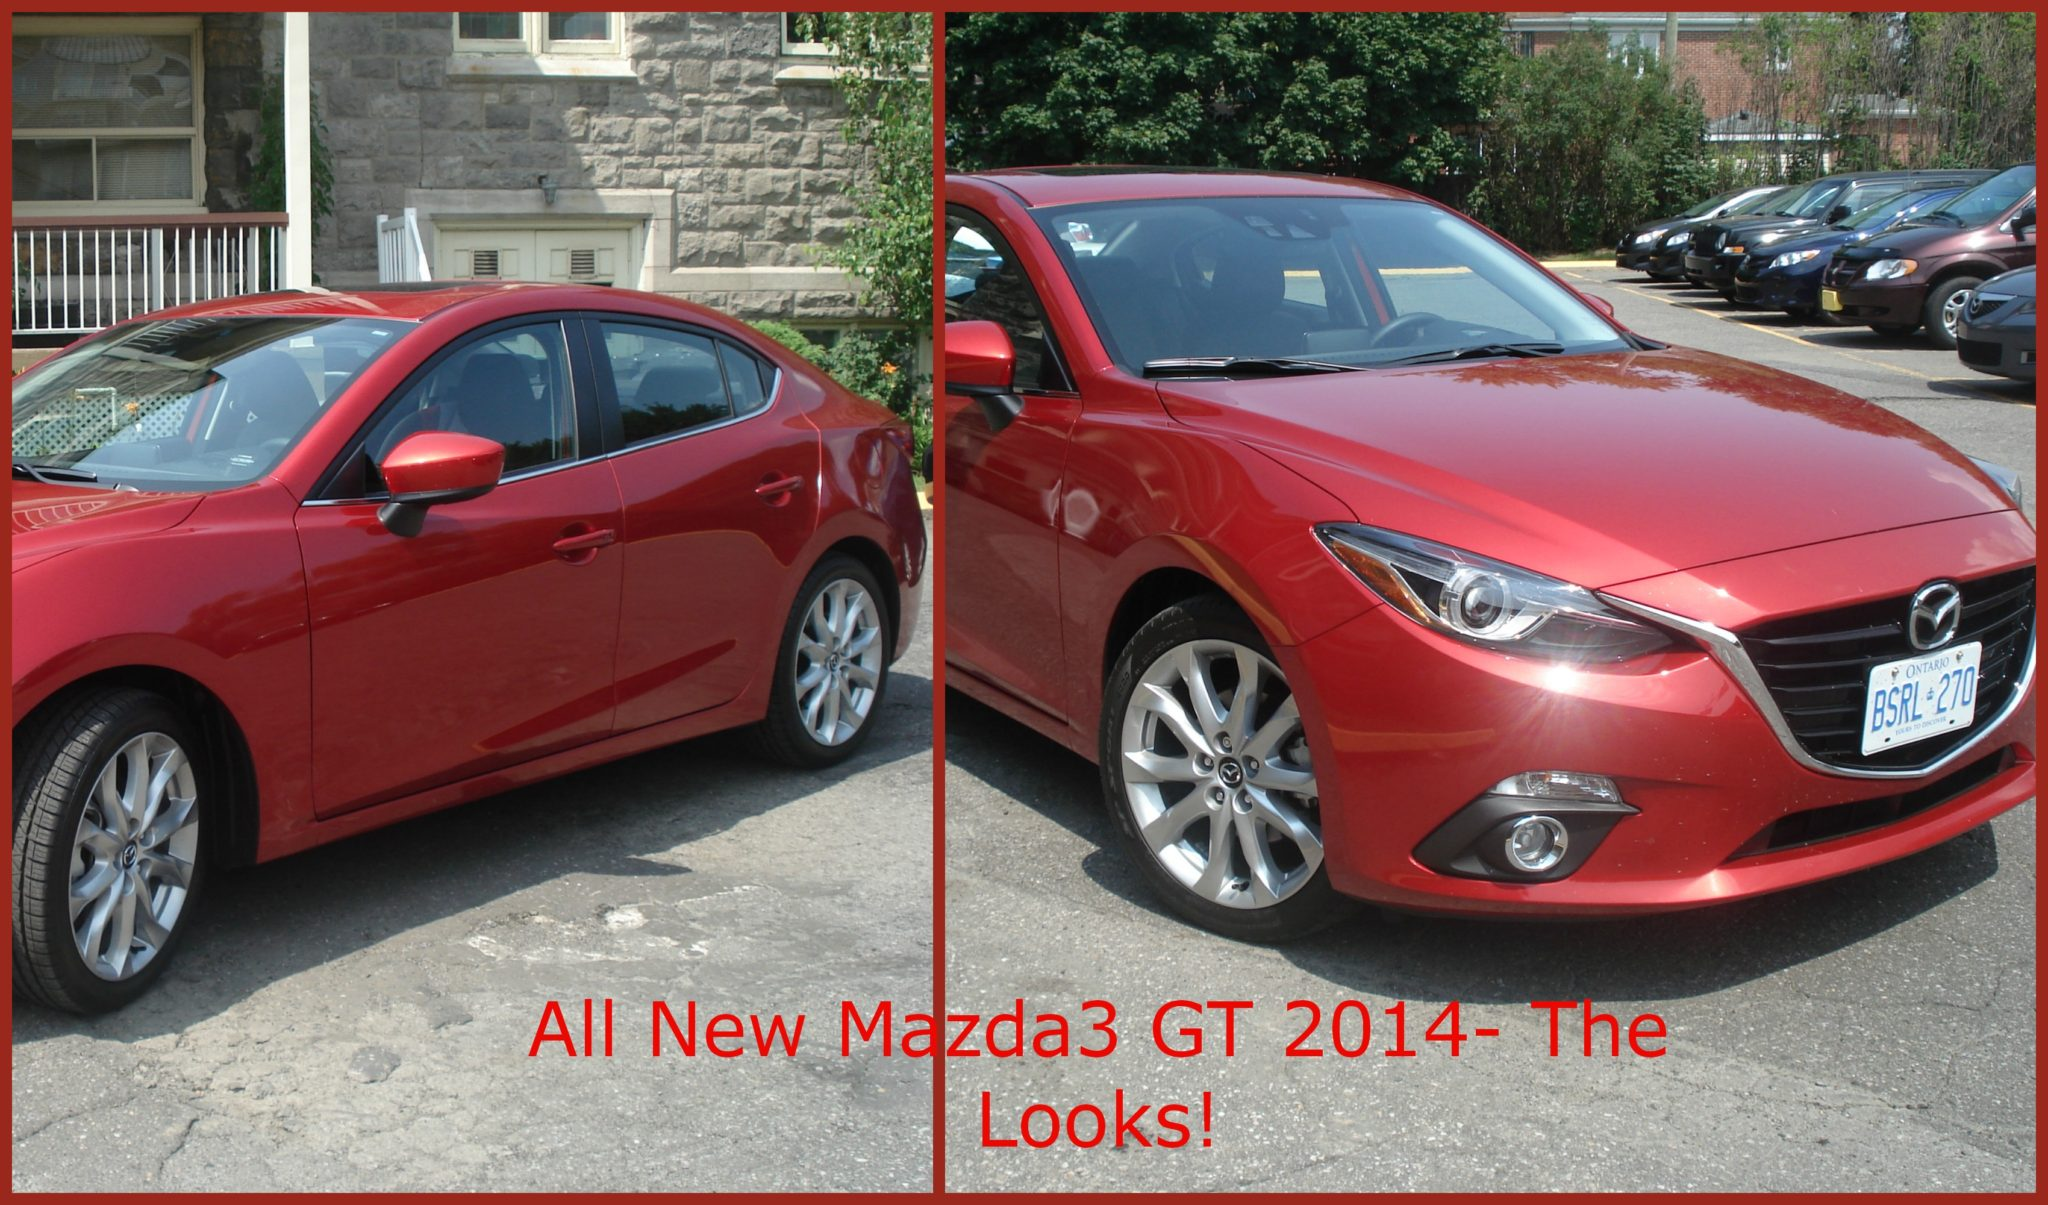 Mazda3 GT 2014- Review